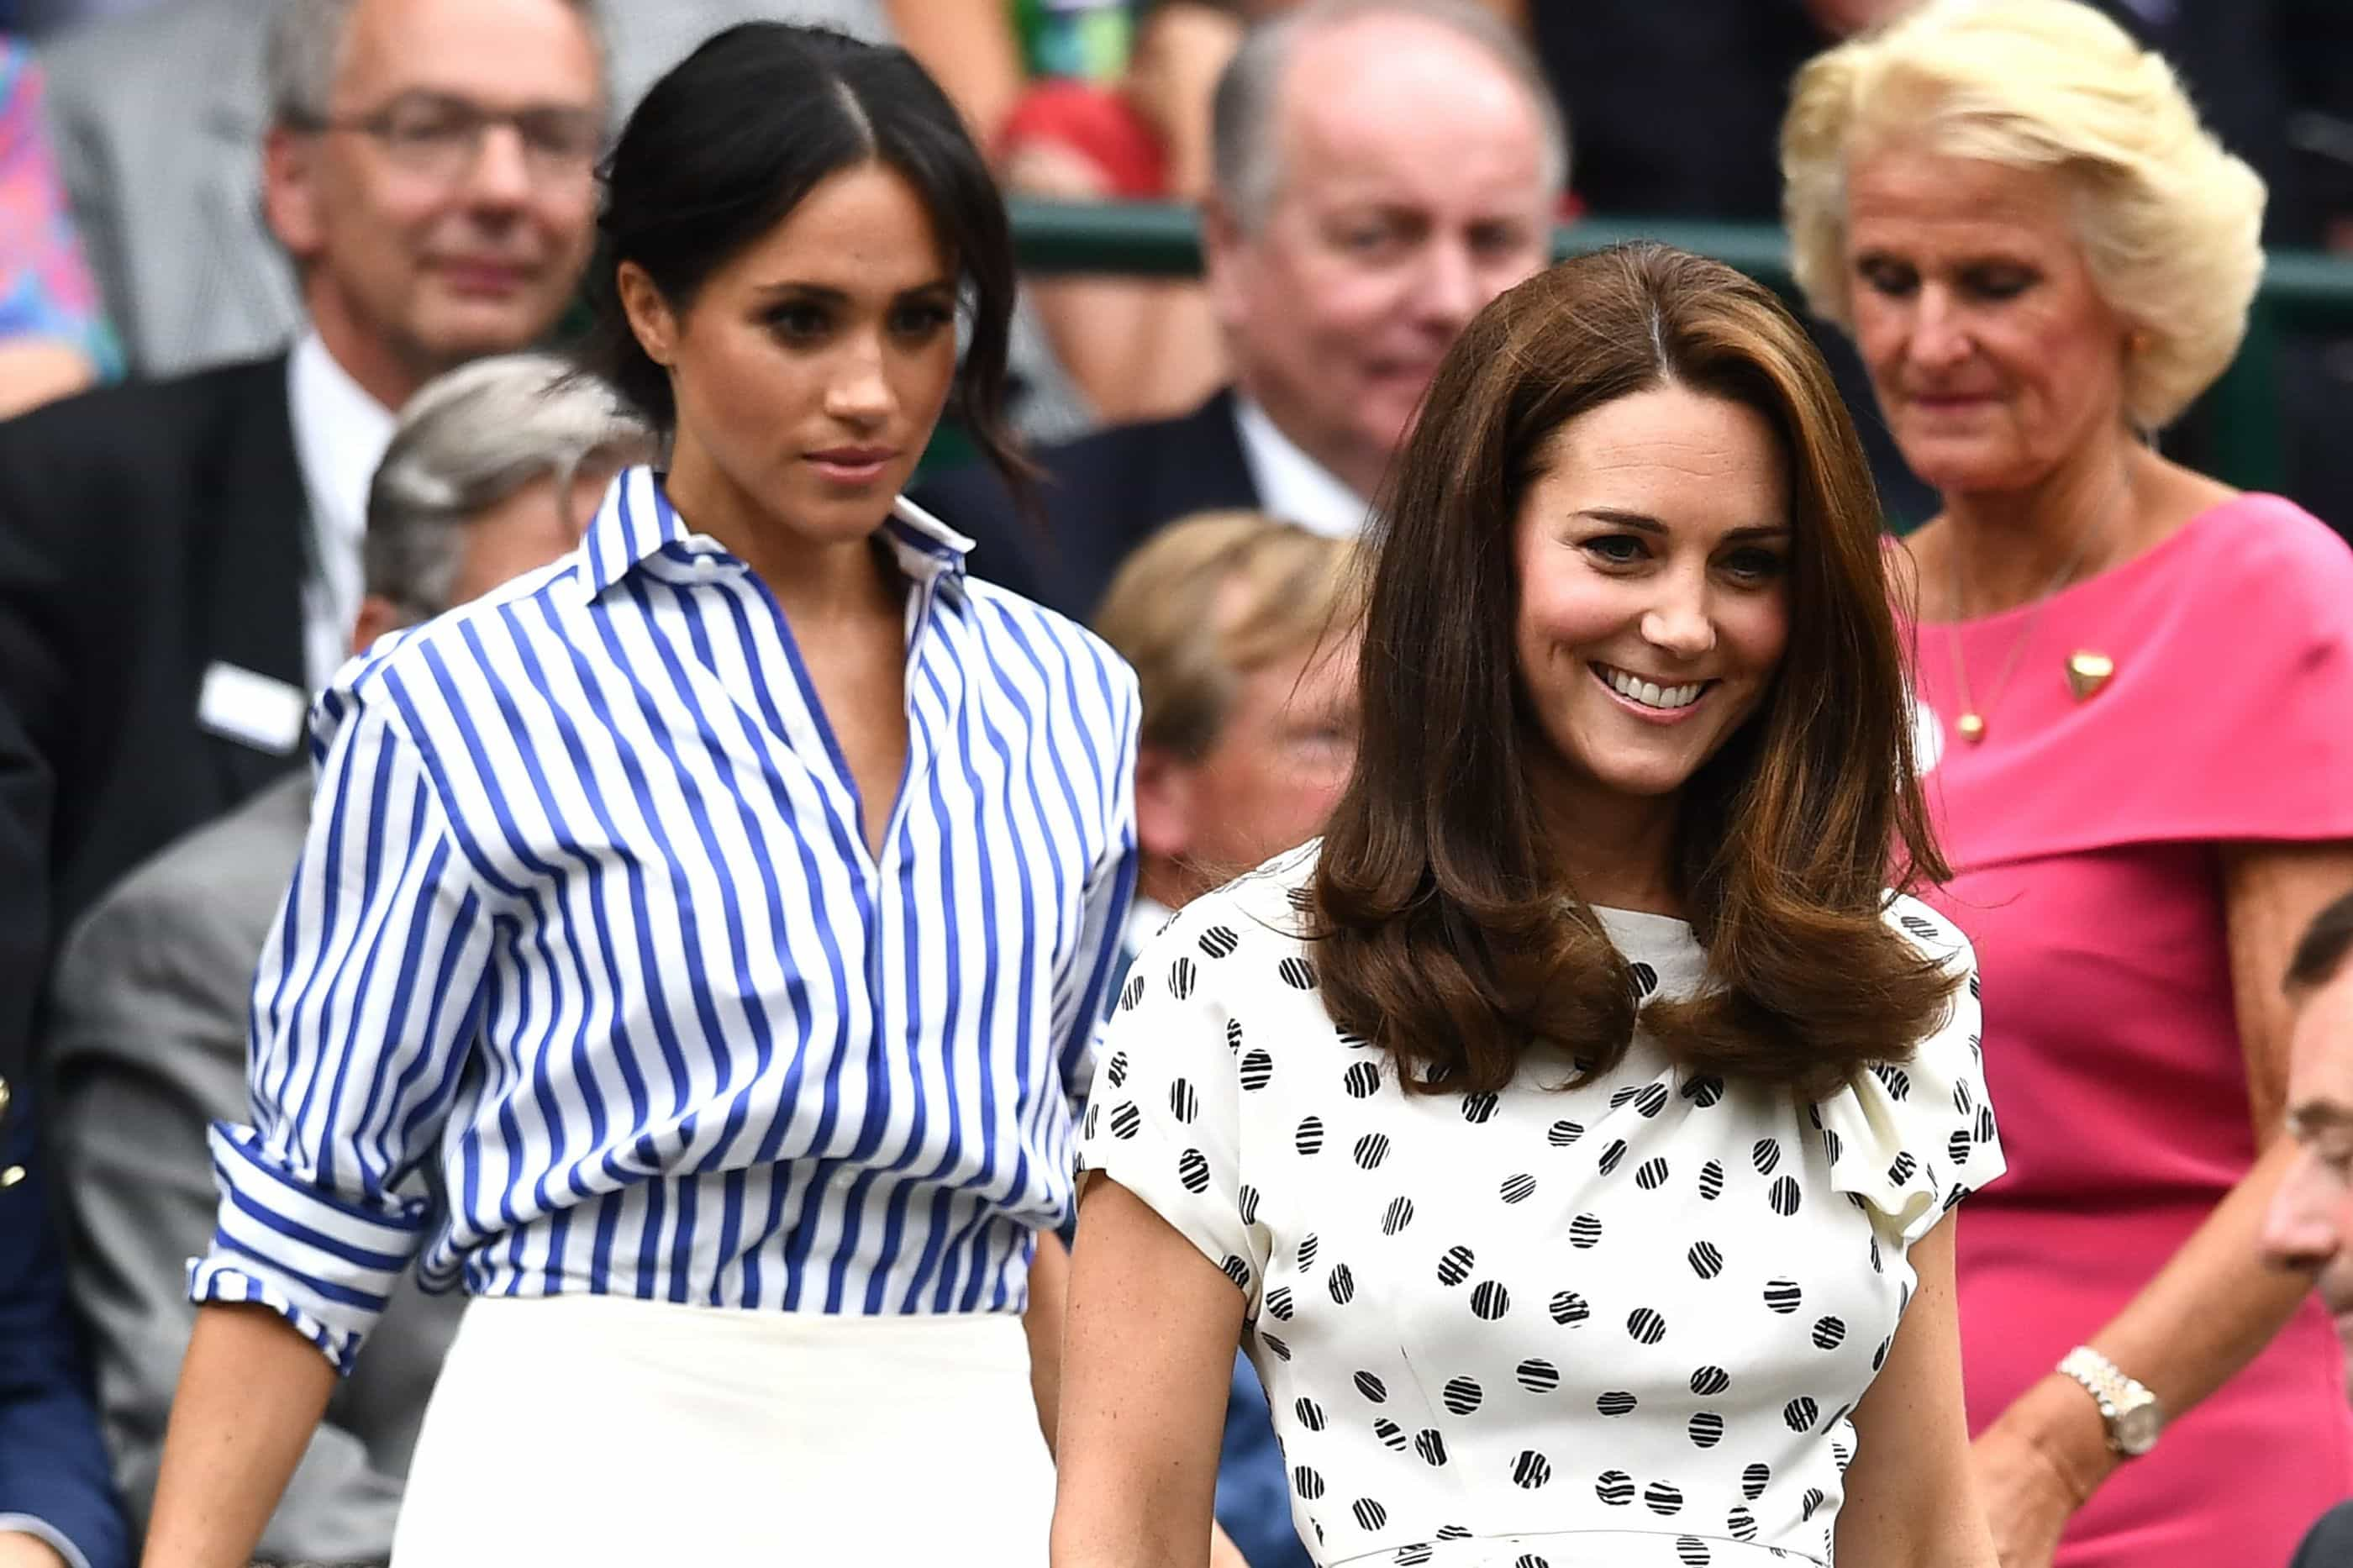 Kate Middleton continua a ser mais influente do que Meghan Markle